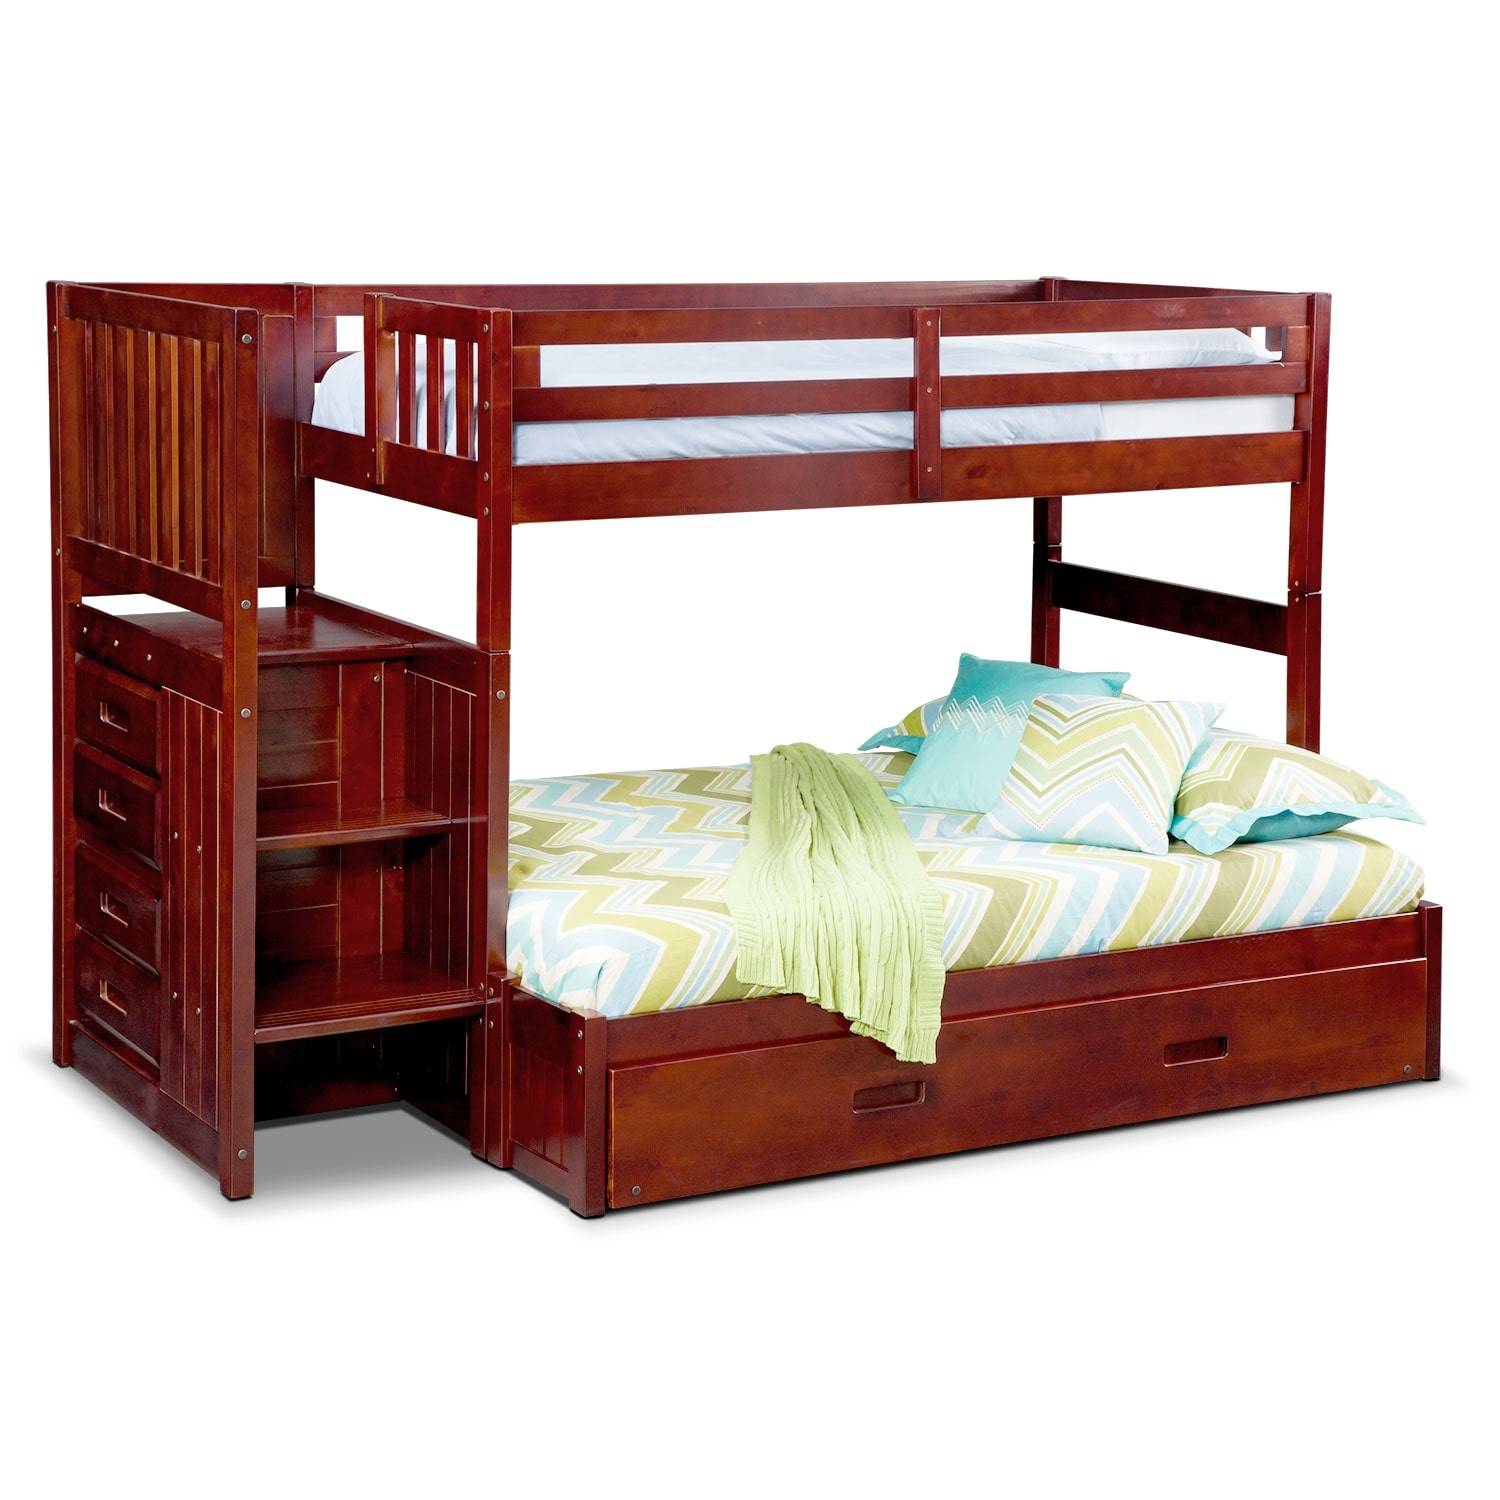 Kids Furniture - Ranger Merlot Twin/Full Bunk Bed with Stairs, Storage and Trundle